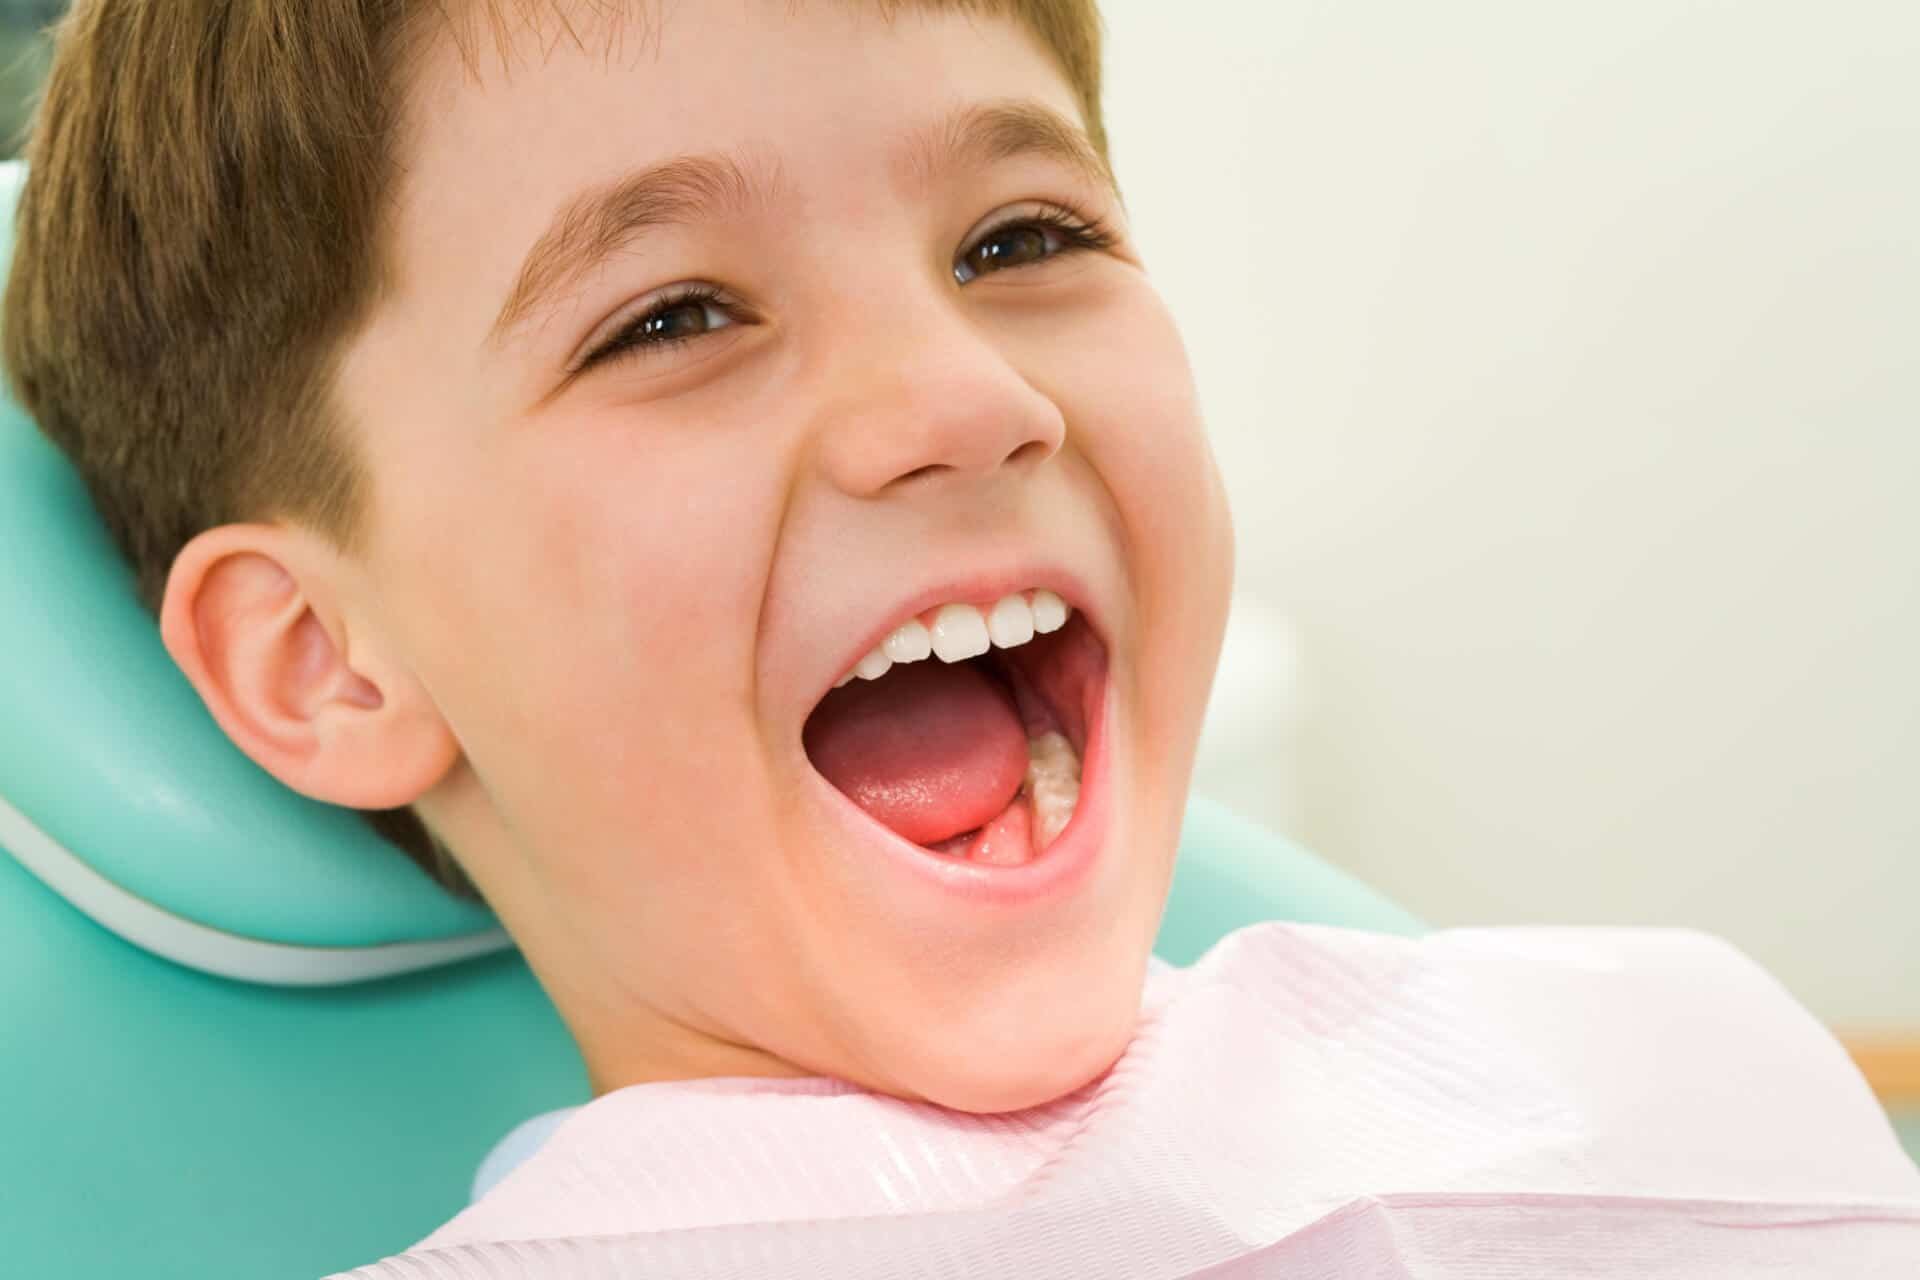 Is your child in need of South Florida Tongue Tie procedure?